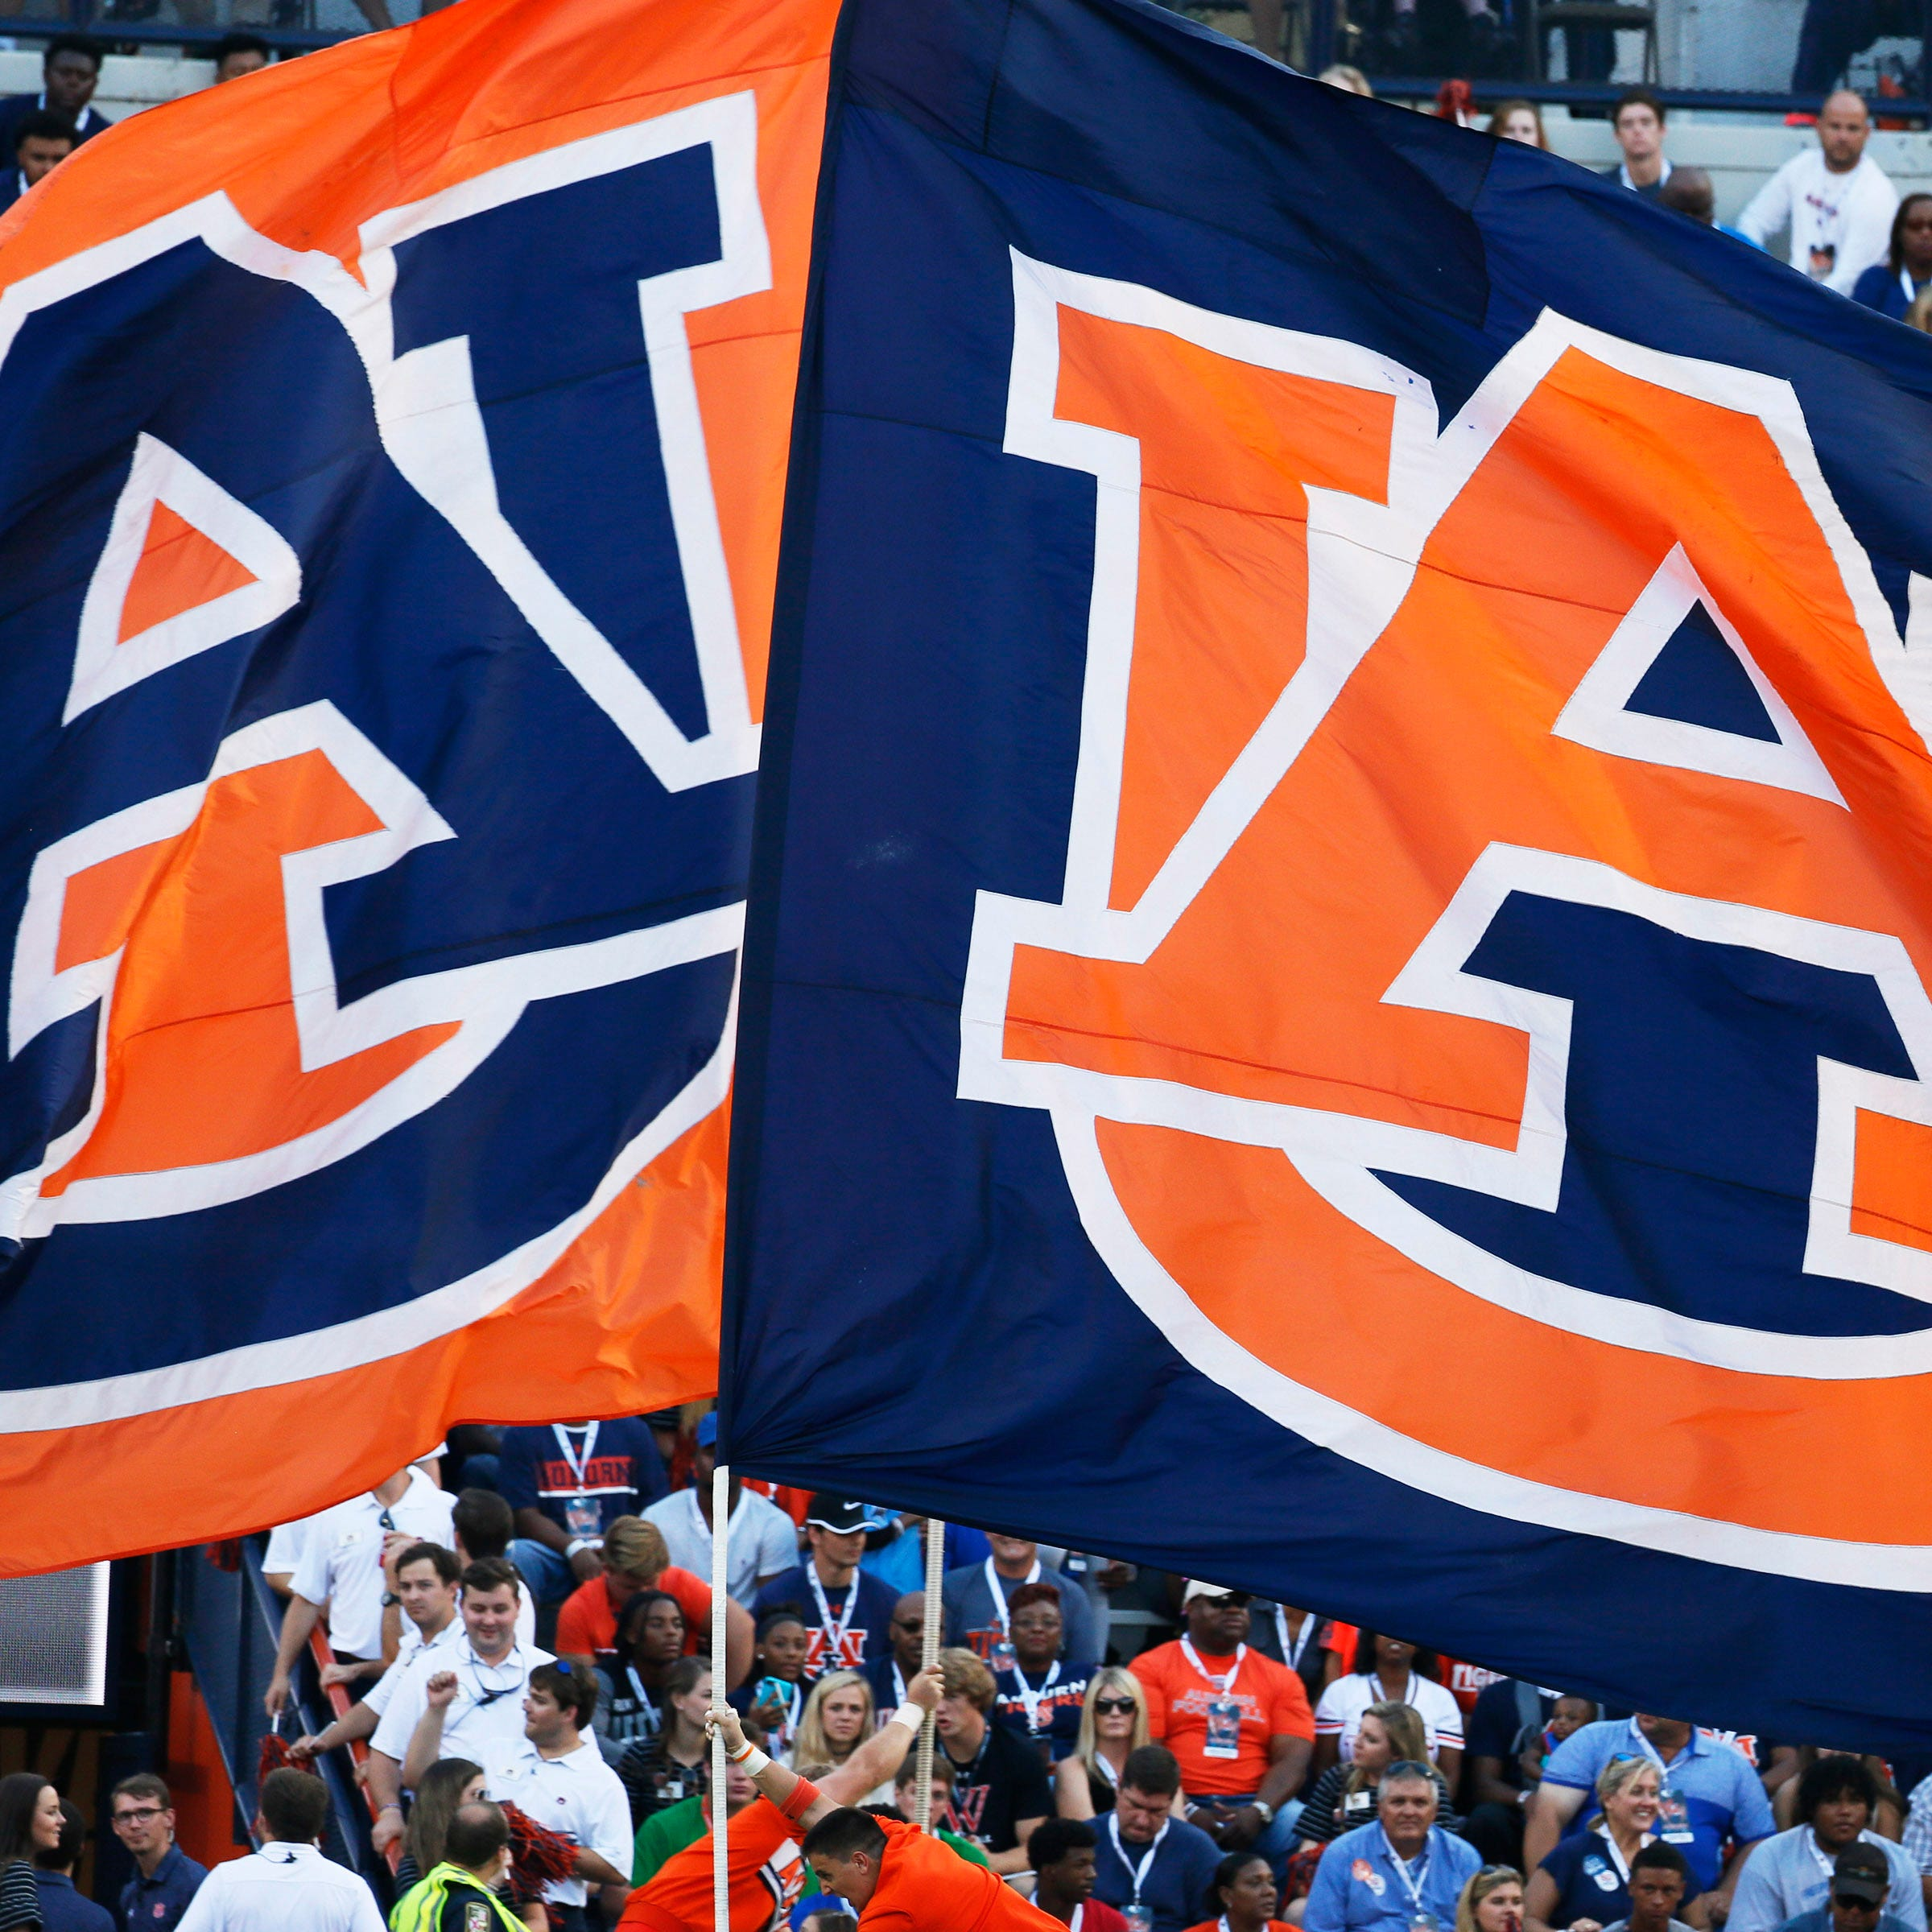 LIVE Auburn vs. Arkansas: Tigers look to bounce back vs. the Razorbacks